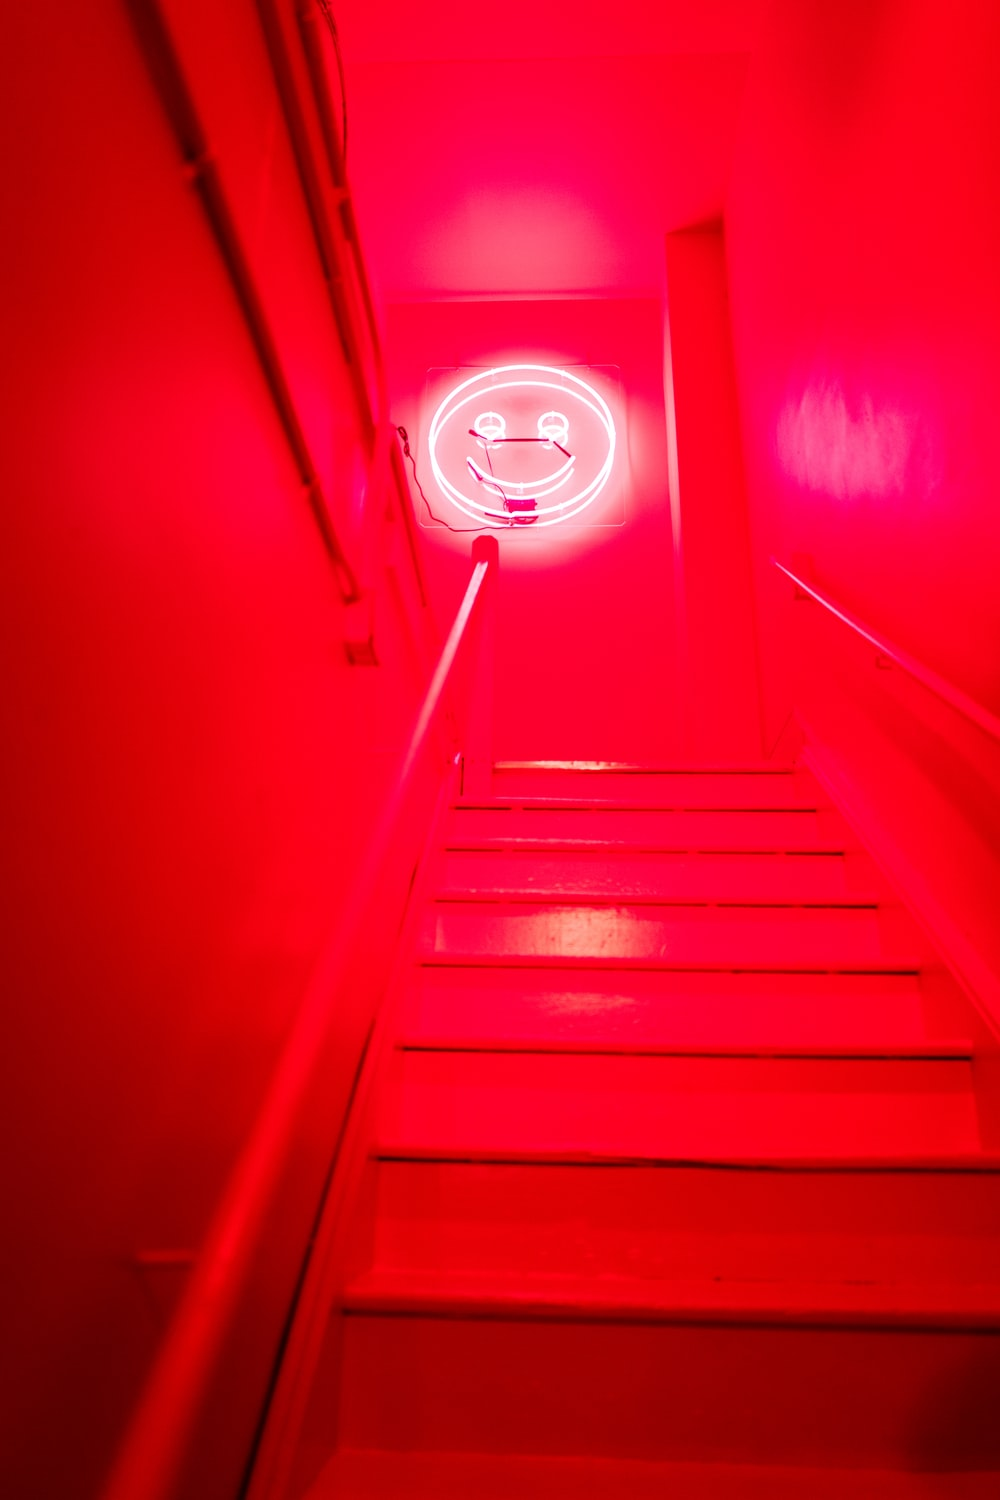 red and white staircase with white light